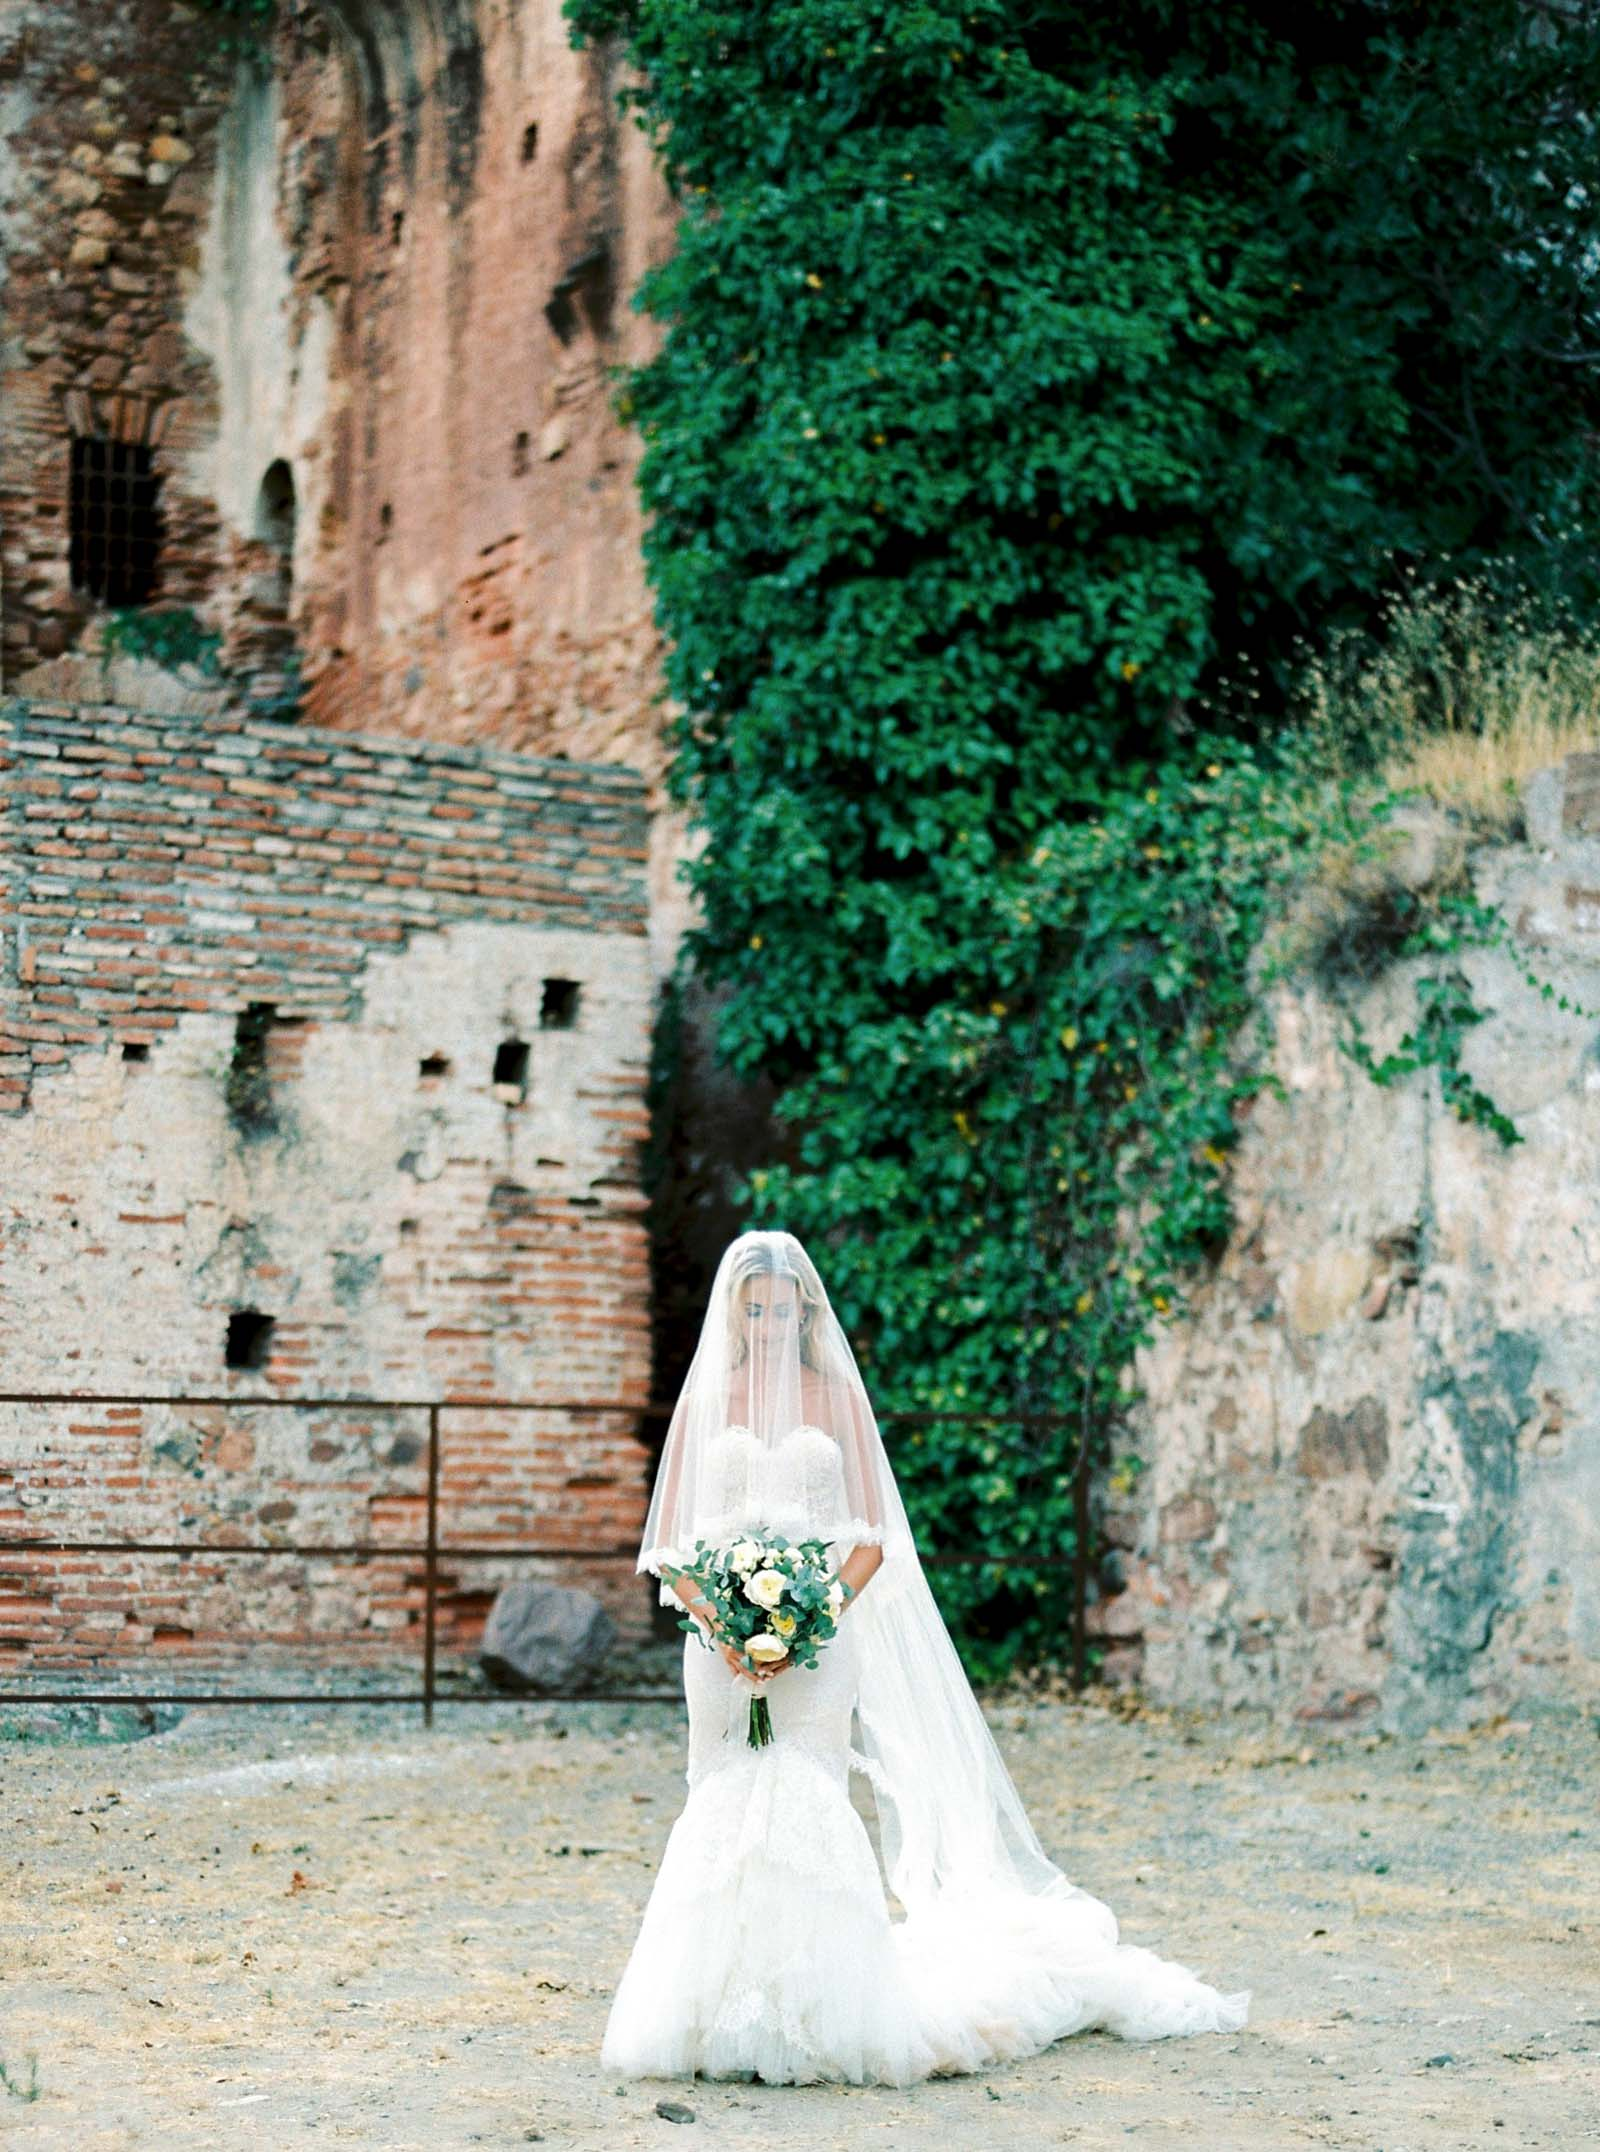 Beautiful wedding in Marbella, Spain at Finca la Concepcion - Krmorenophoto